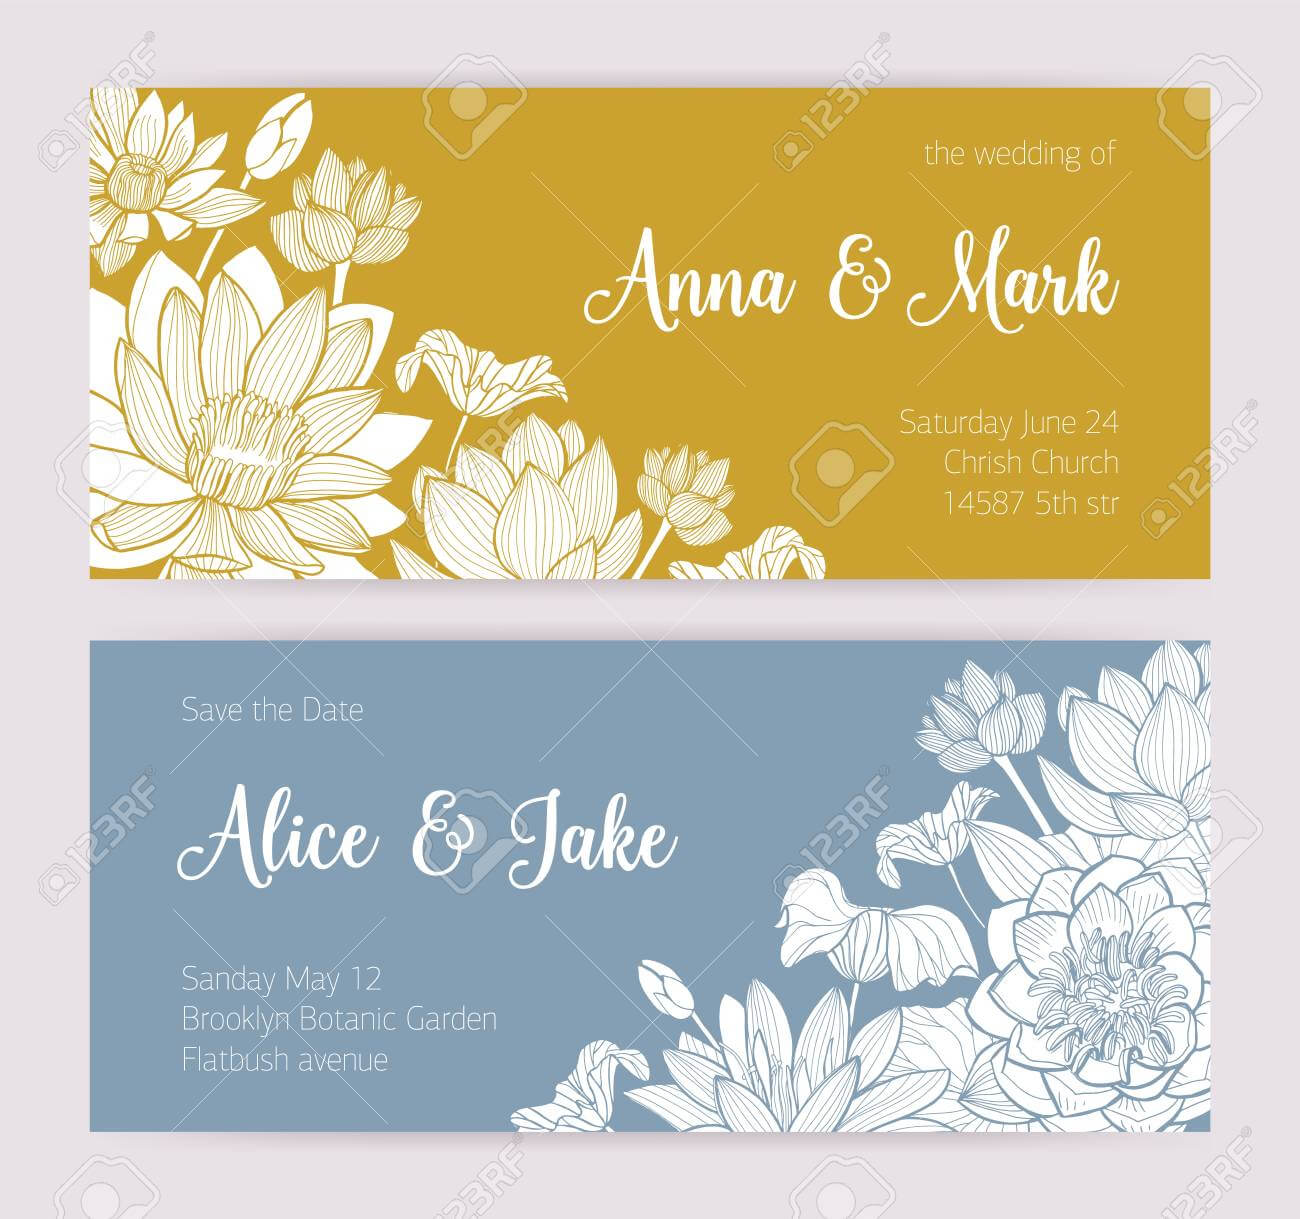 Elegant Wedding Invitation Or Save The Date Card Templates With.. in Save The Date Cards Templates